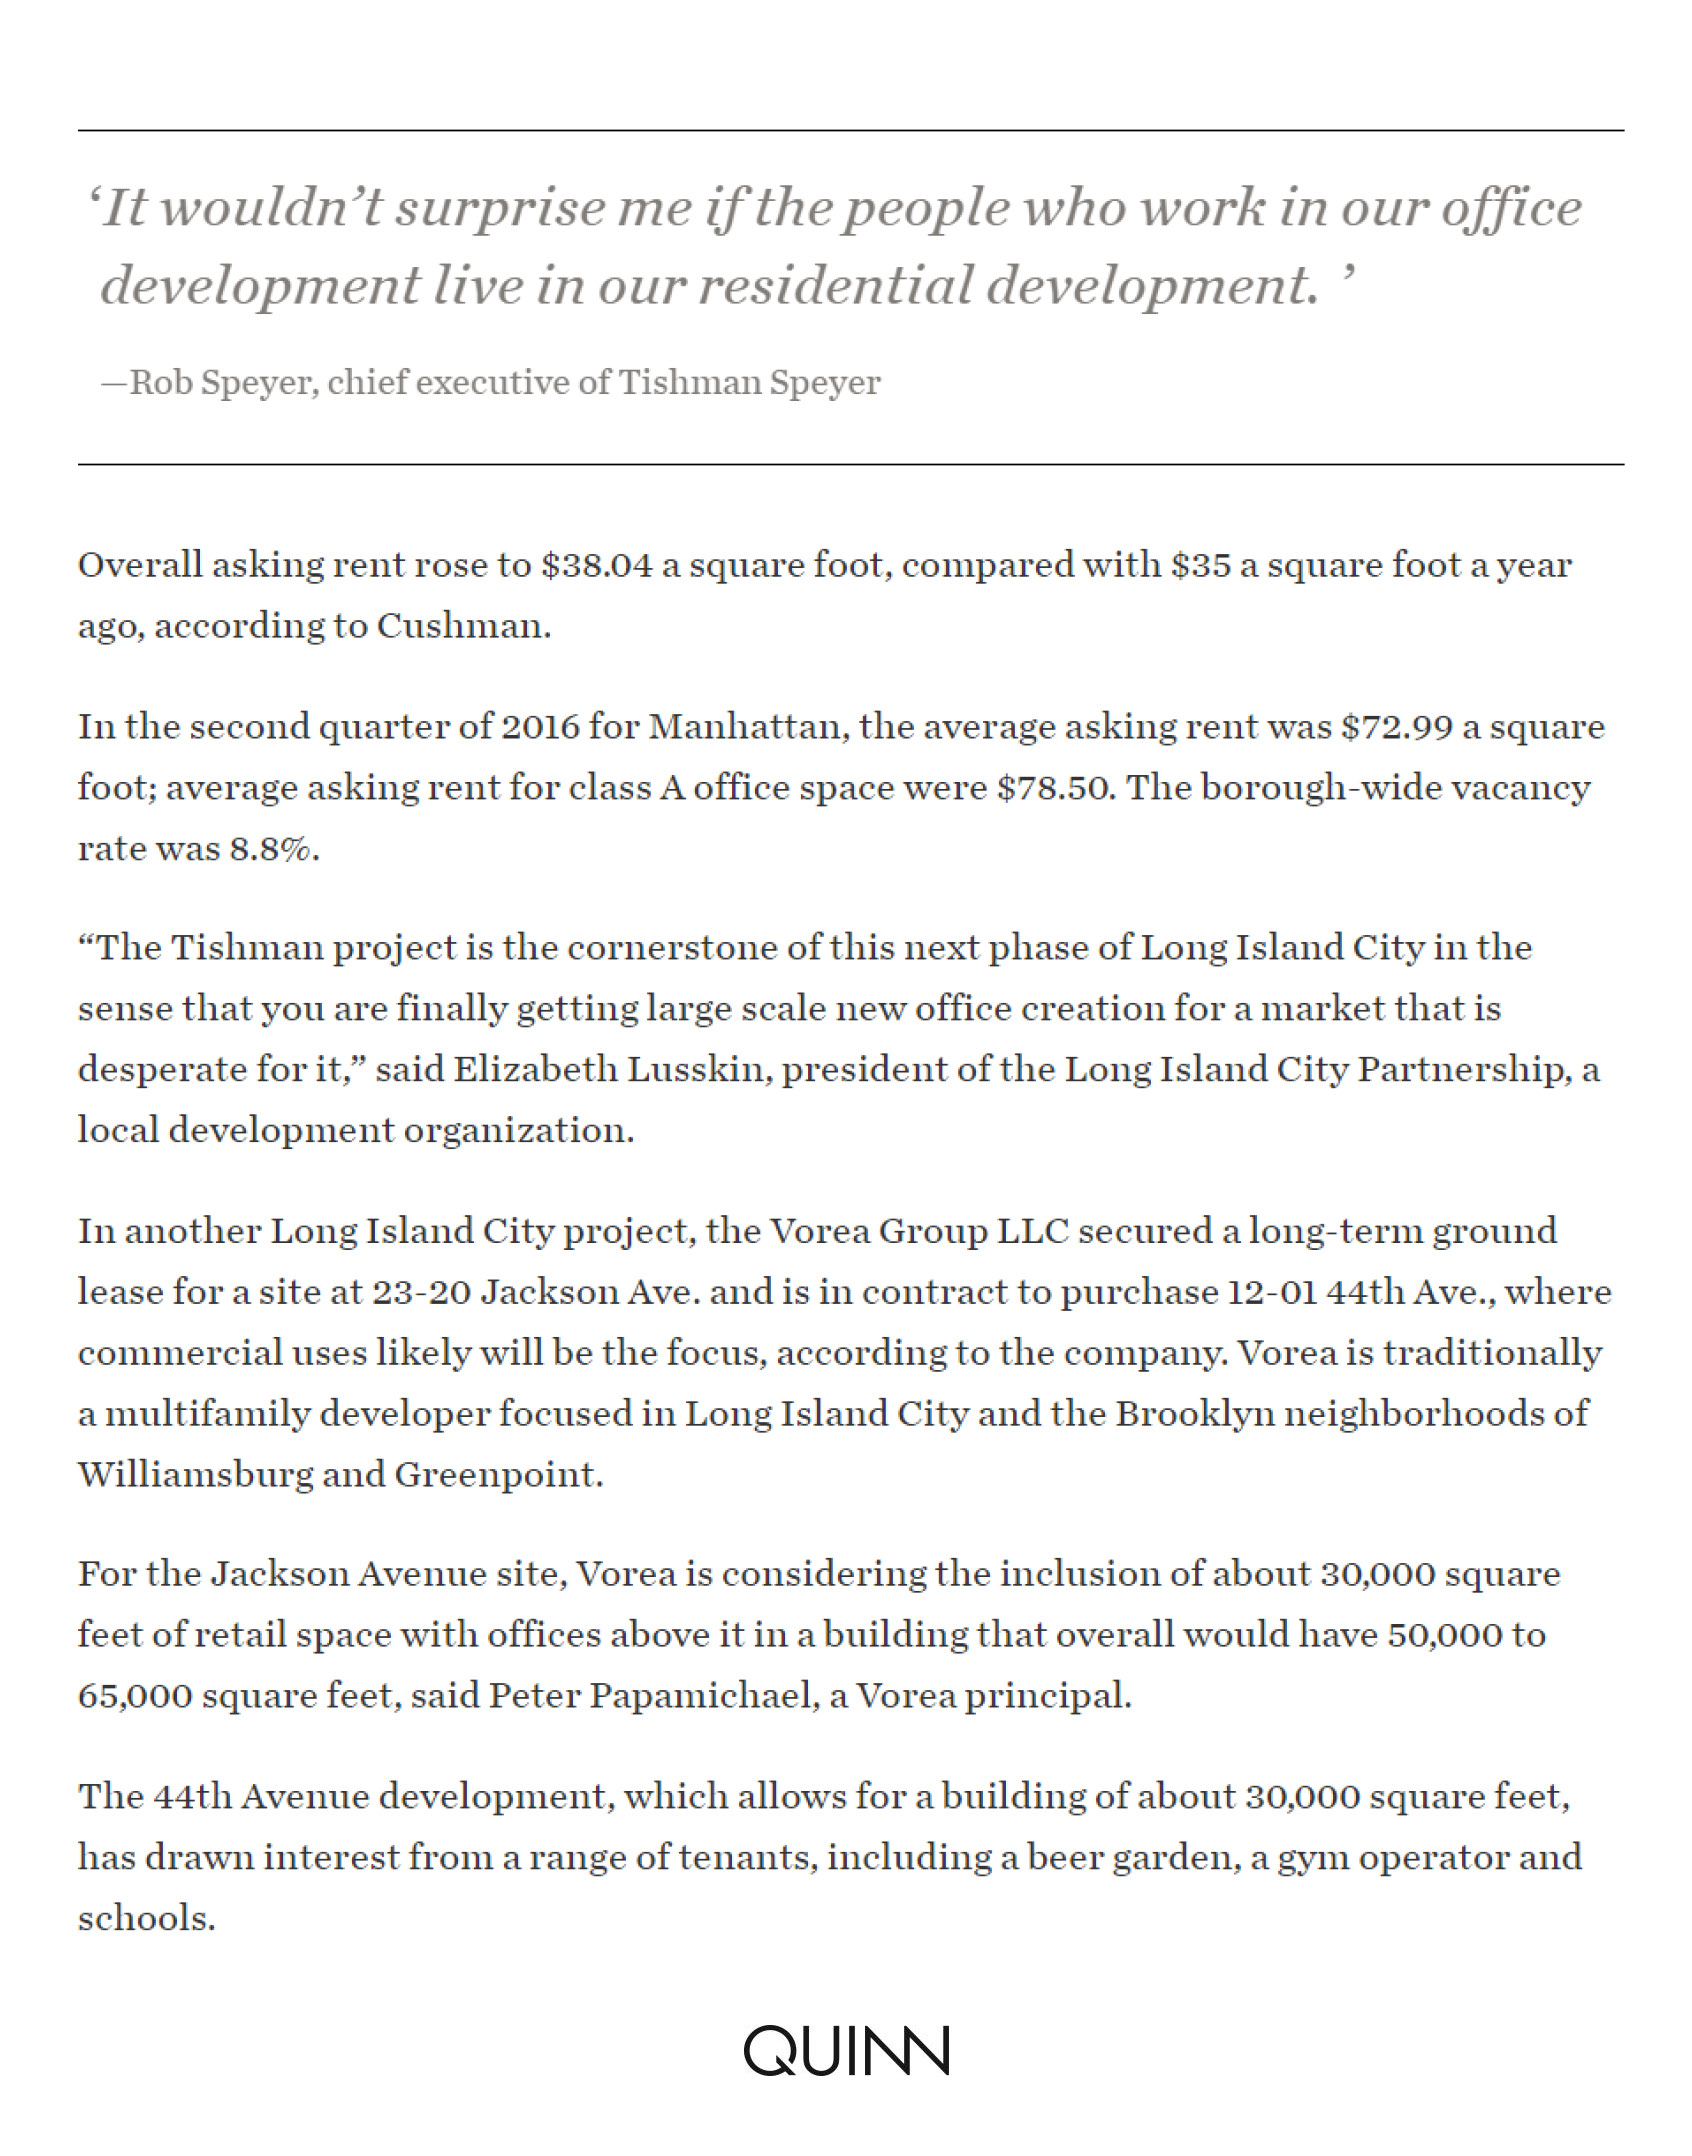 wall-street-journal-in-queens-residential-development-is-fueling-comm-_page_5